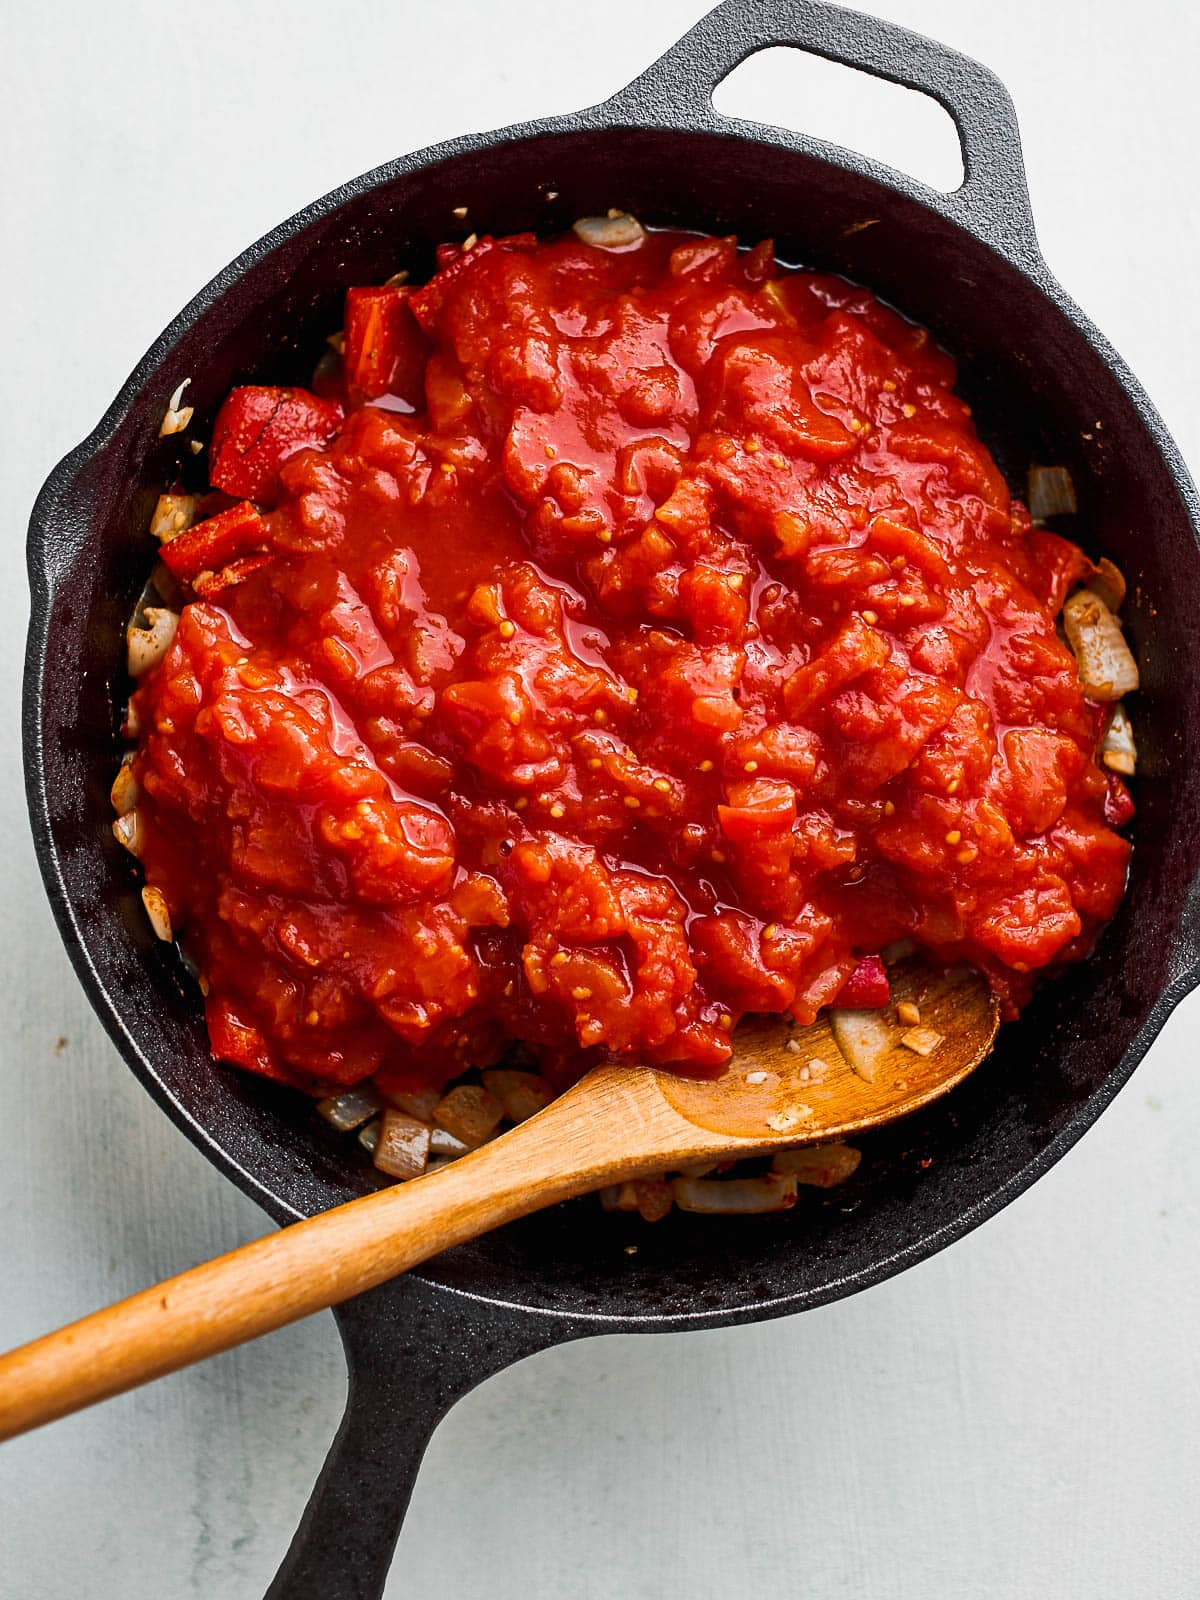 Chopped tomatoes have been added to the skillet